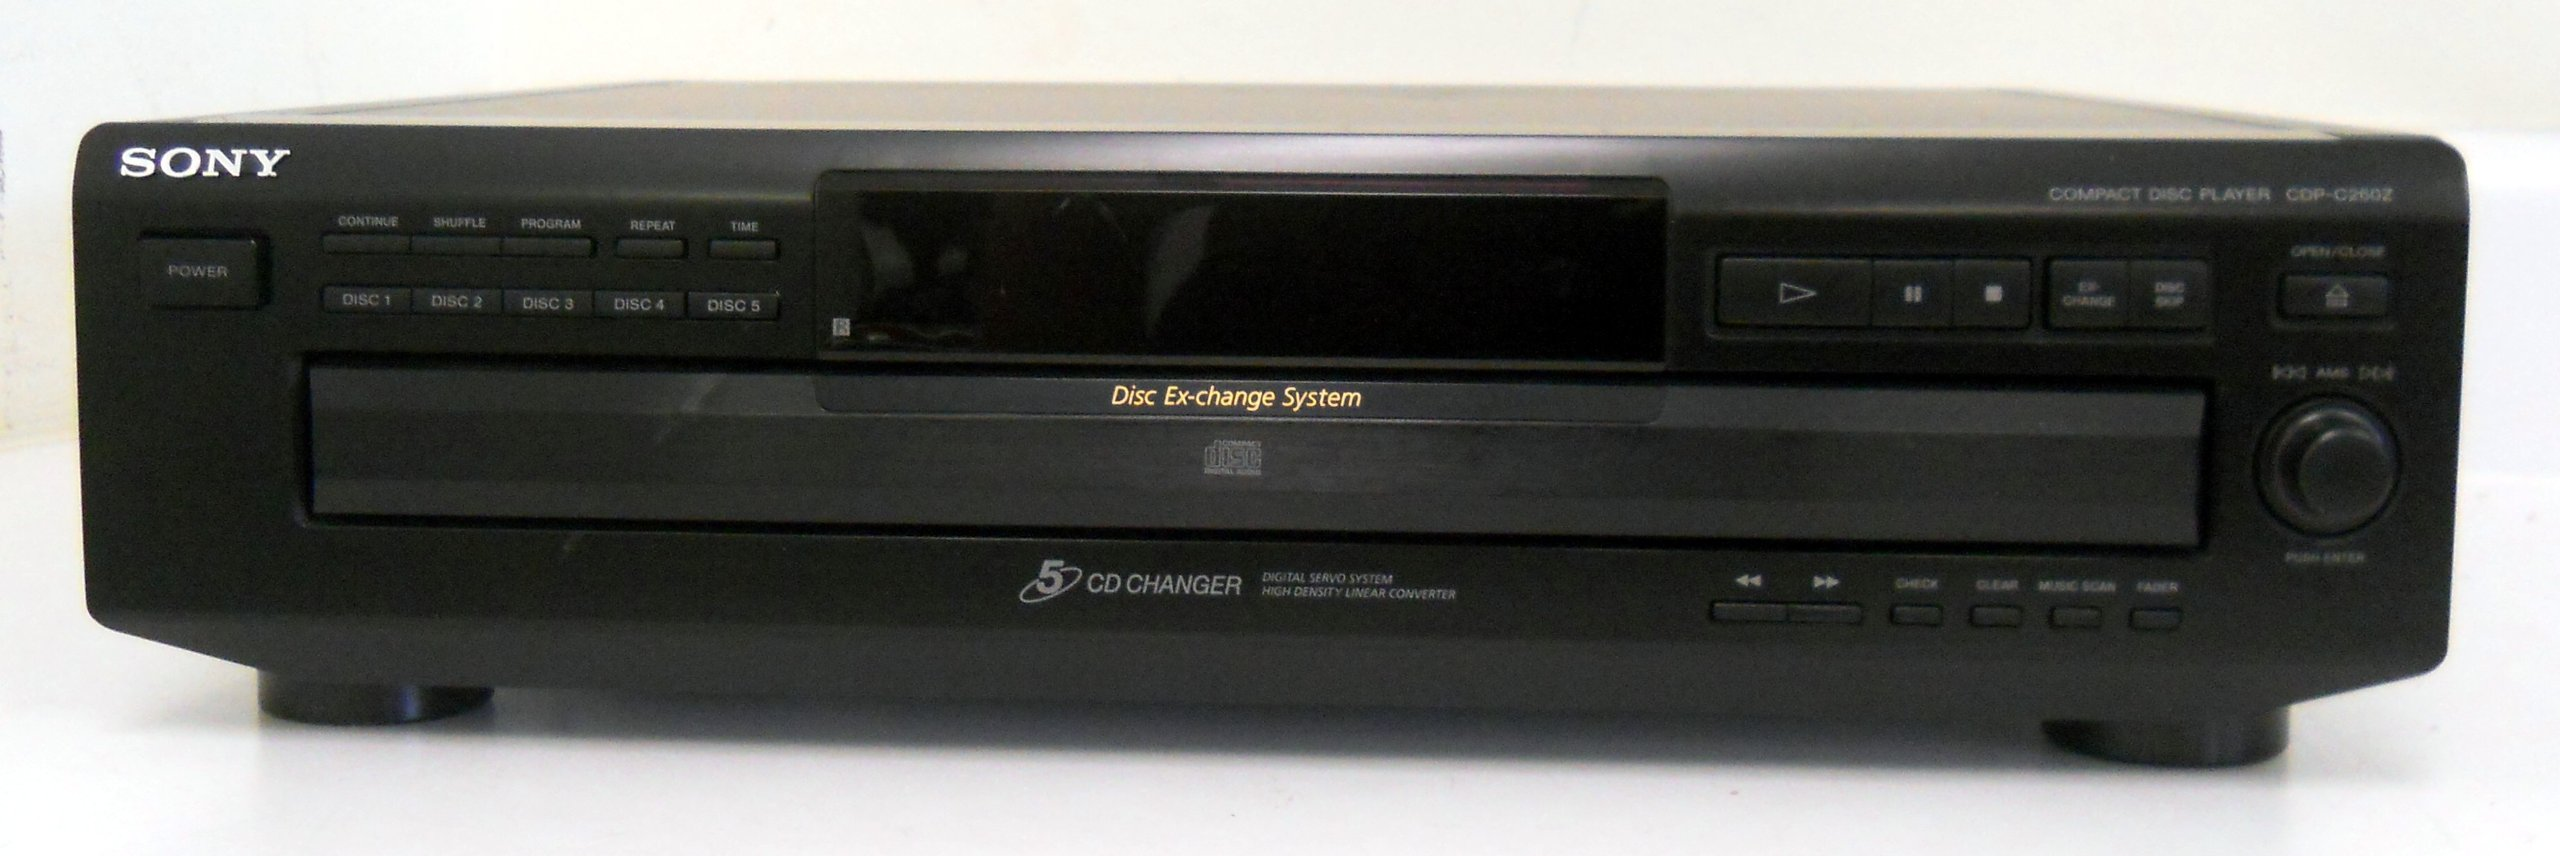 Sony CDP-C260Z Compact Disc Player Changer w/ Disc Exchange System